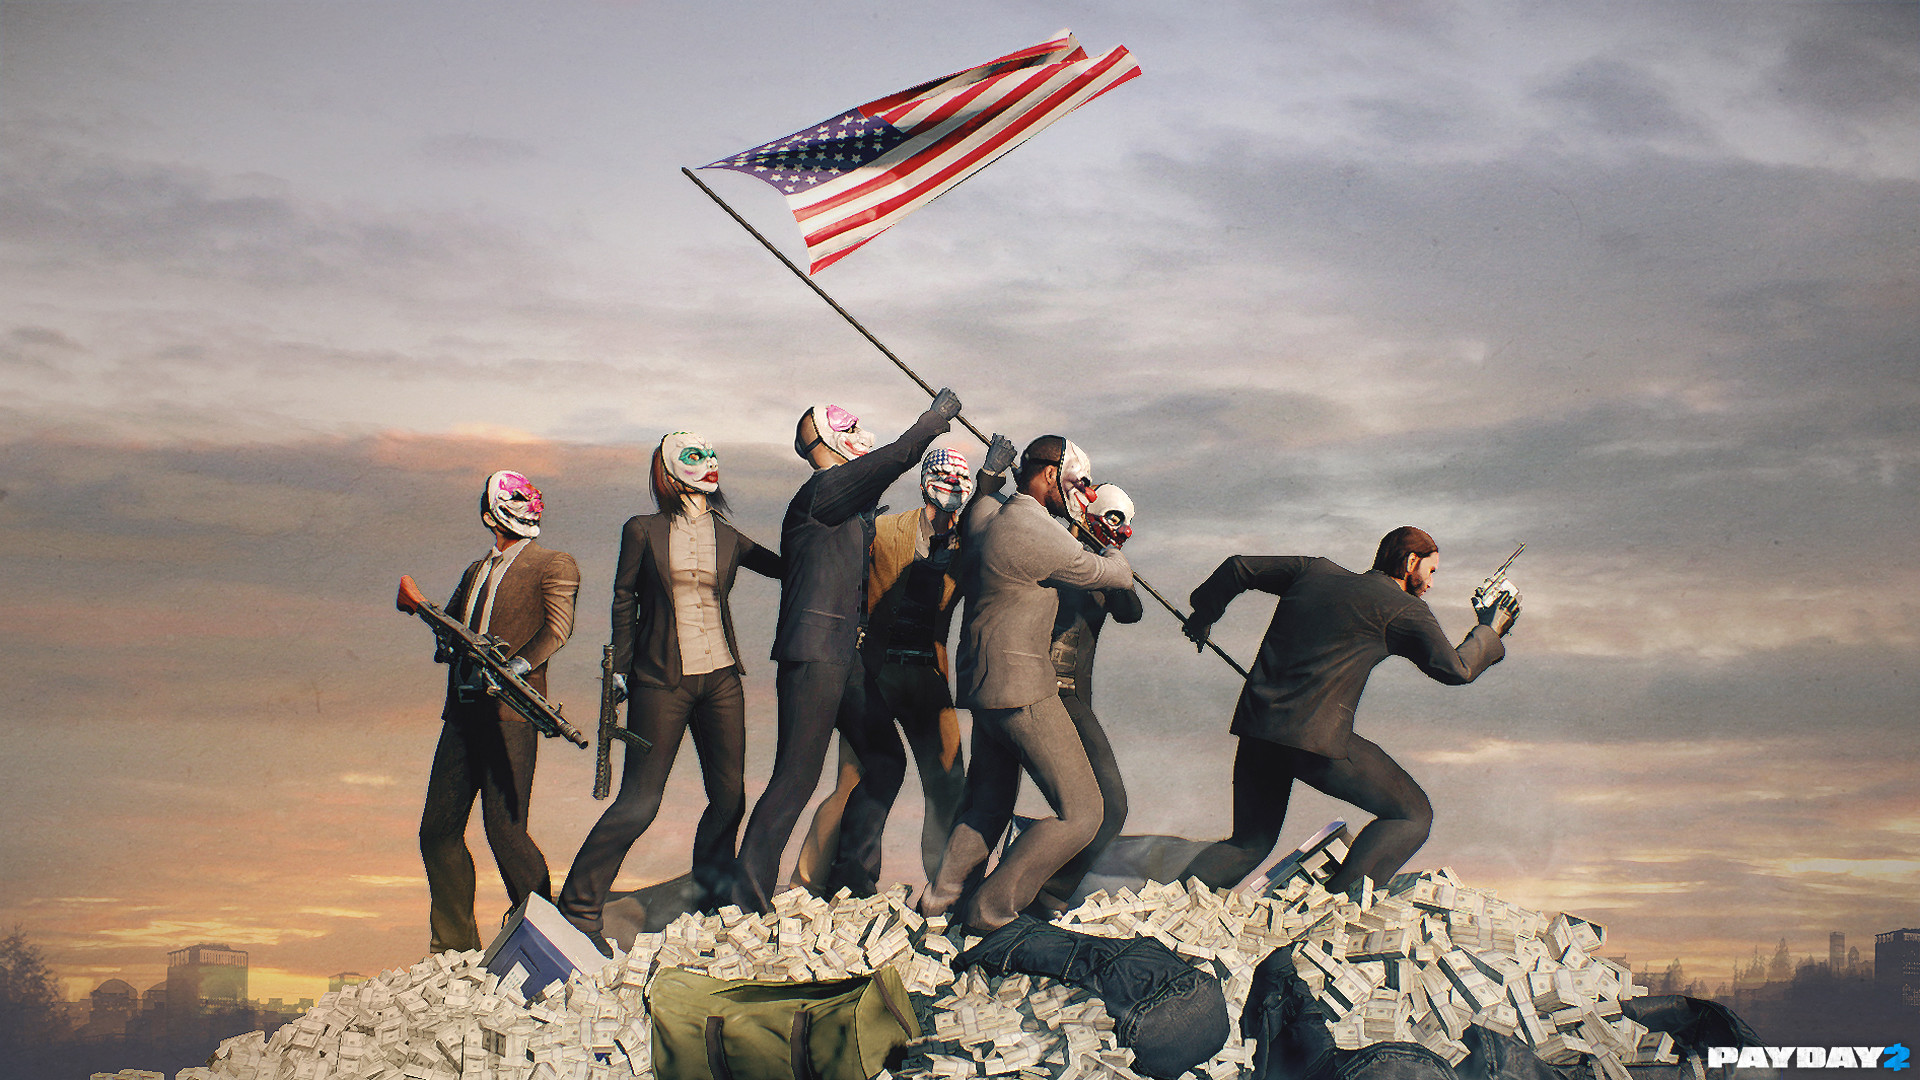 Res: 1920x1080, Payday 2 Payday: The Heist sky